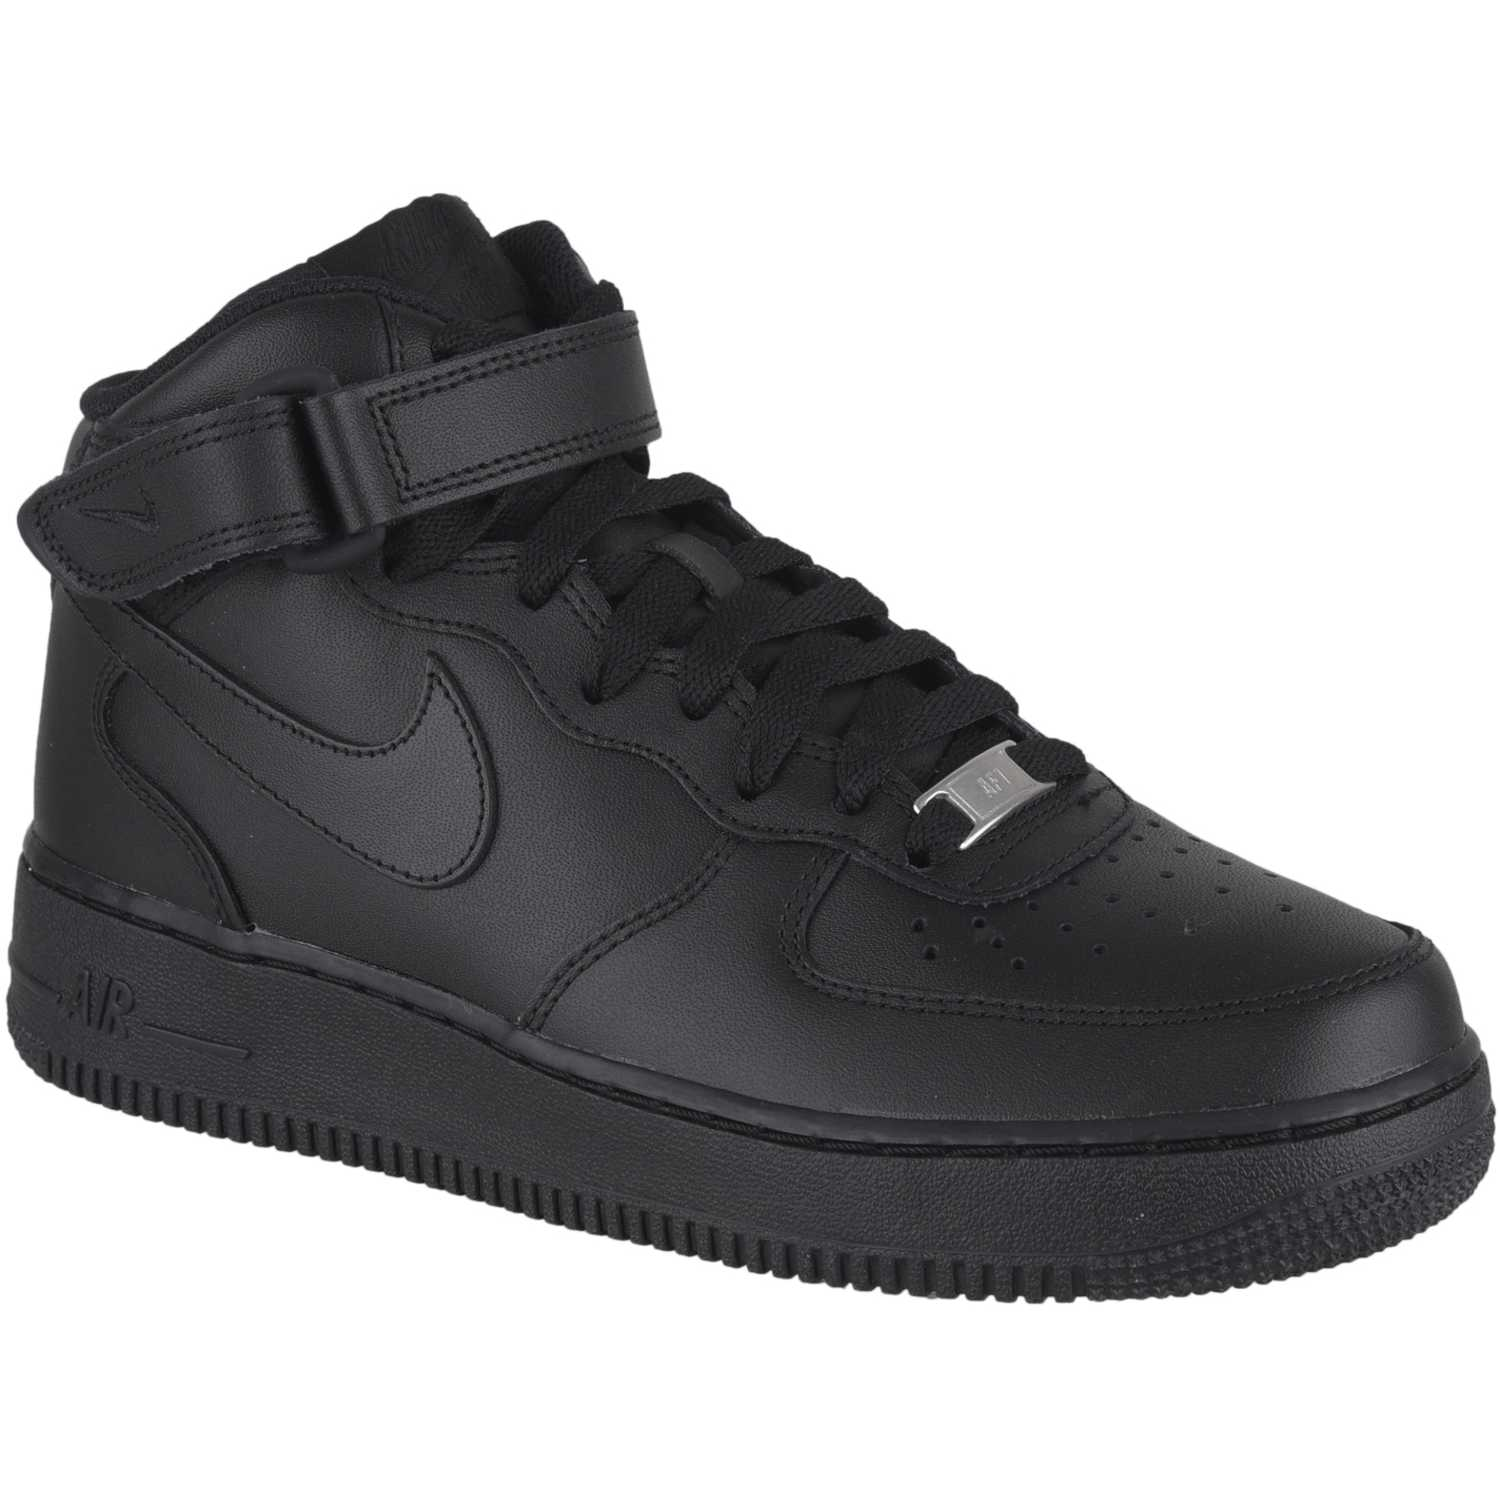 Casual de Hombre Nike Negro negro air force 1 mid 07